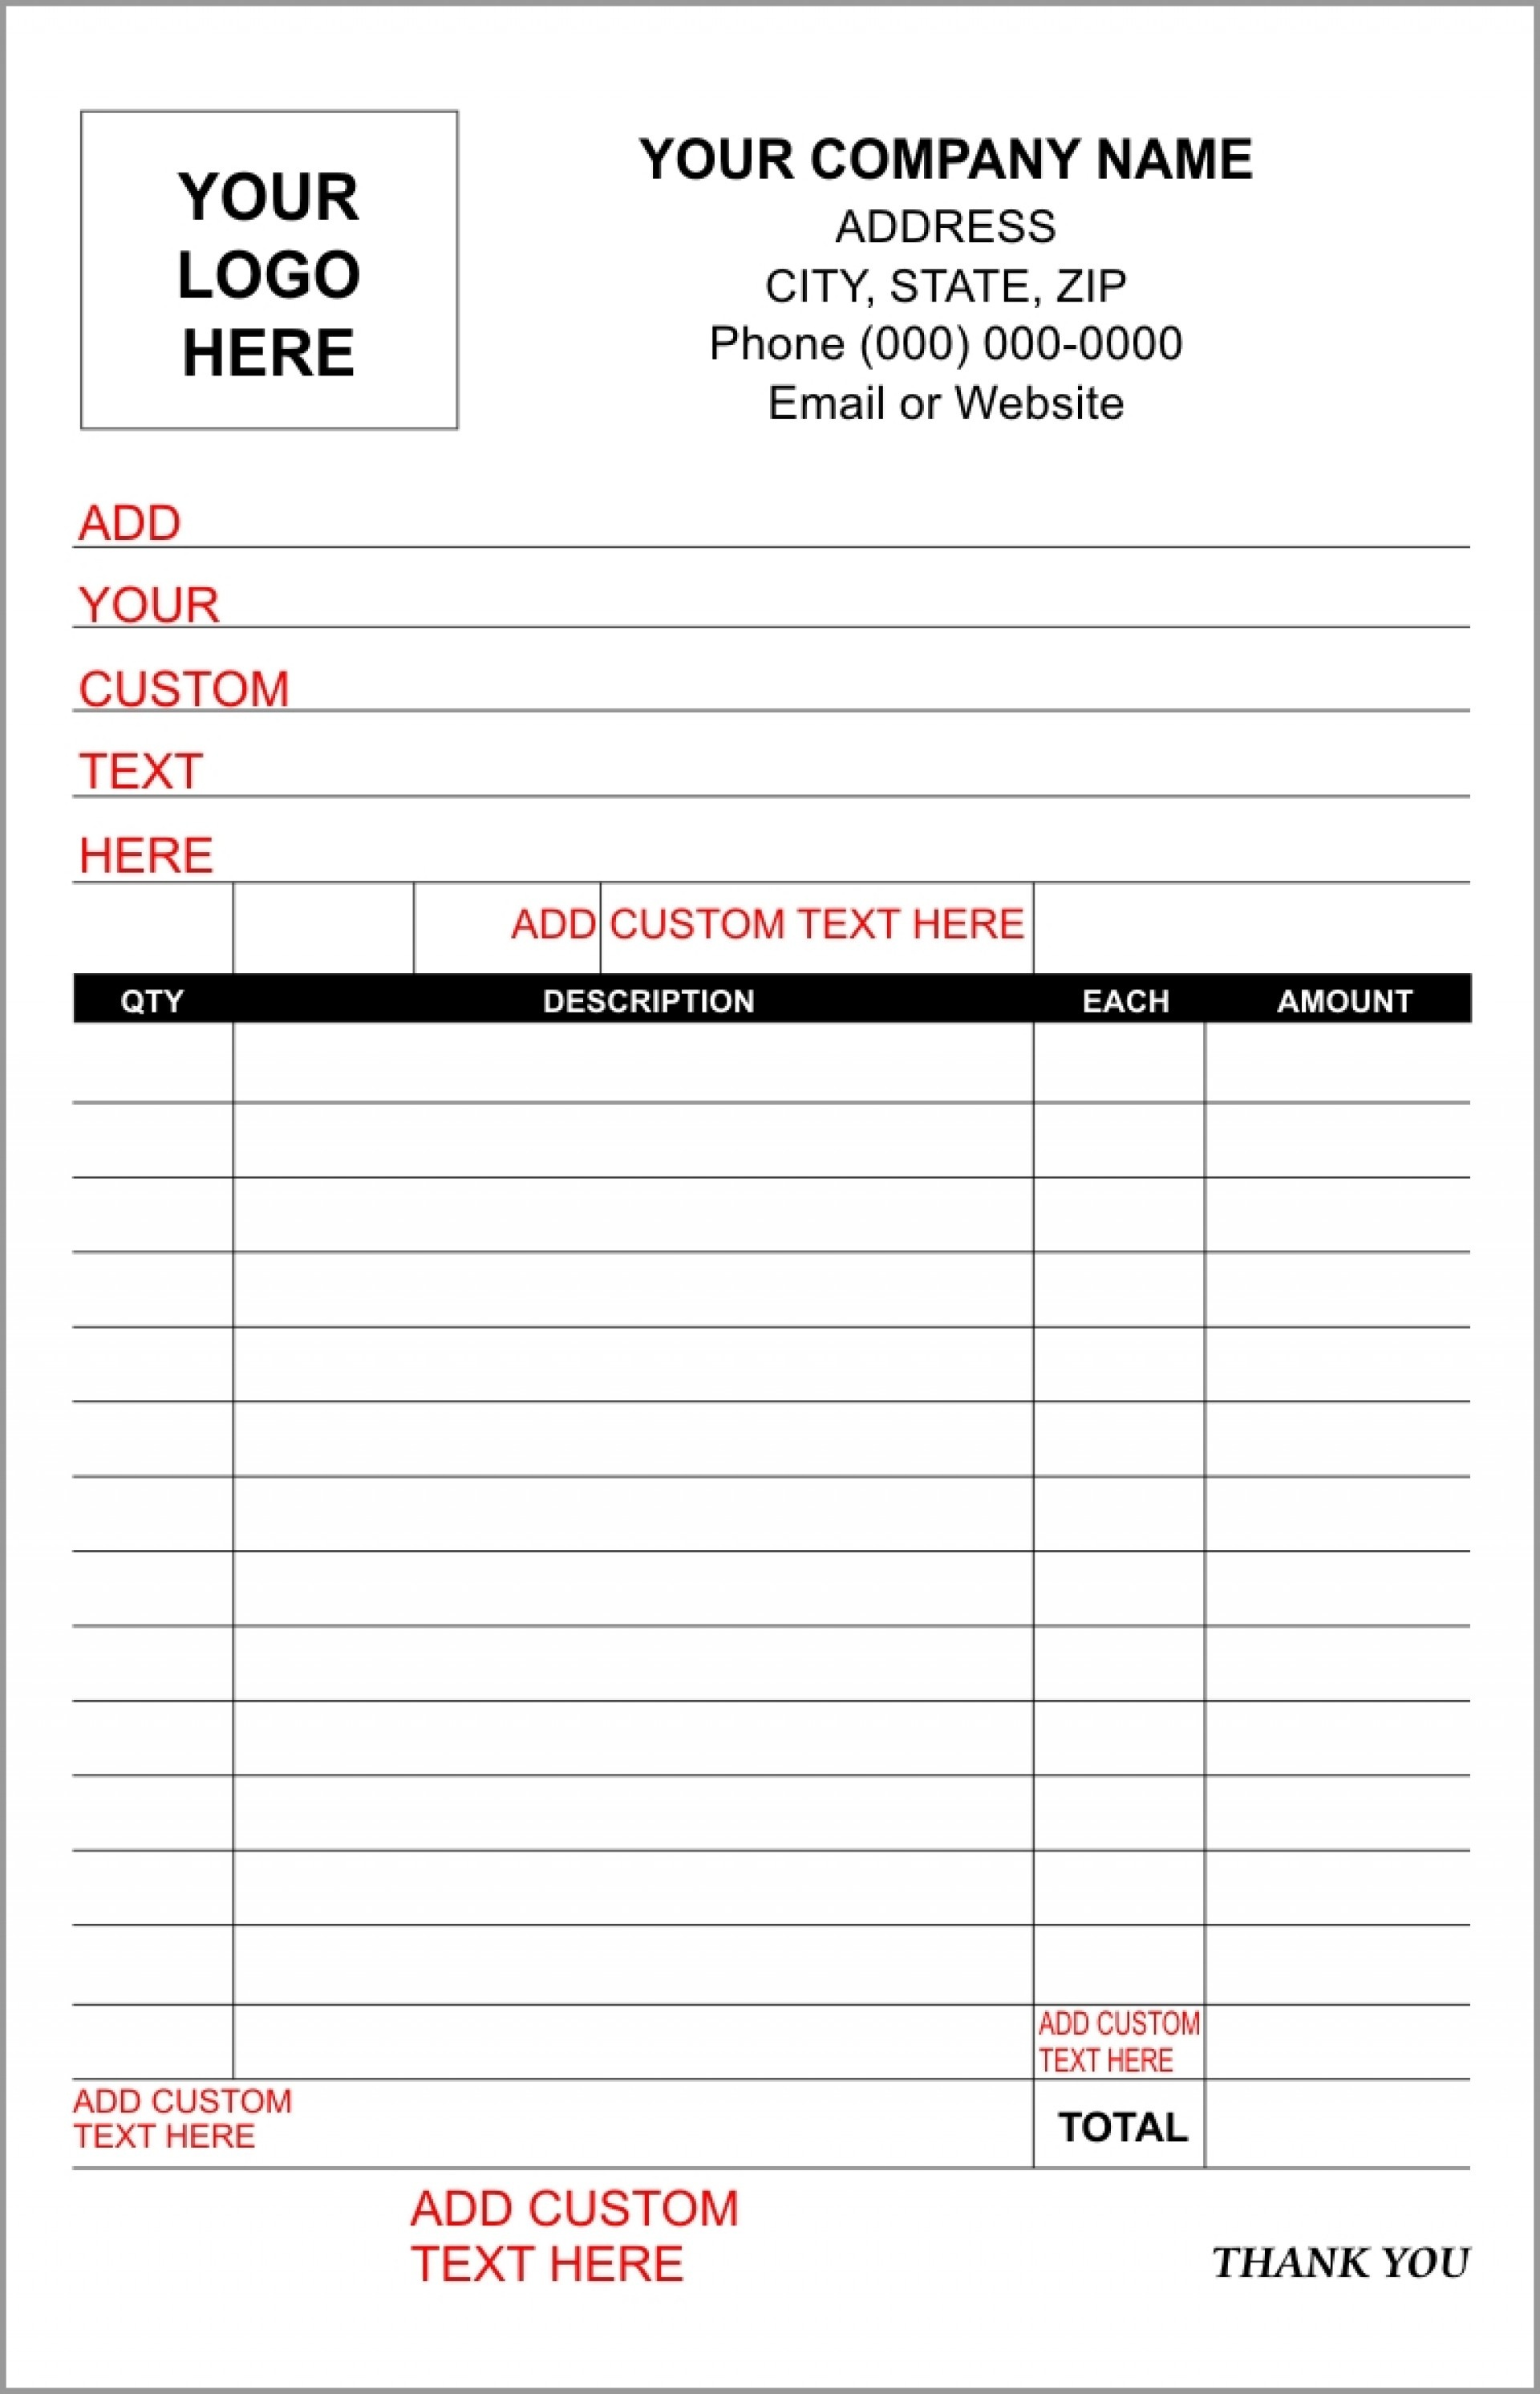 022 Template Ideas Free Printable Sales Receipt Surprising Forms - Free Printable Sales Receipts Online